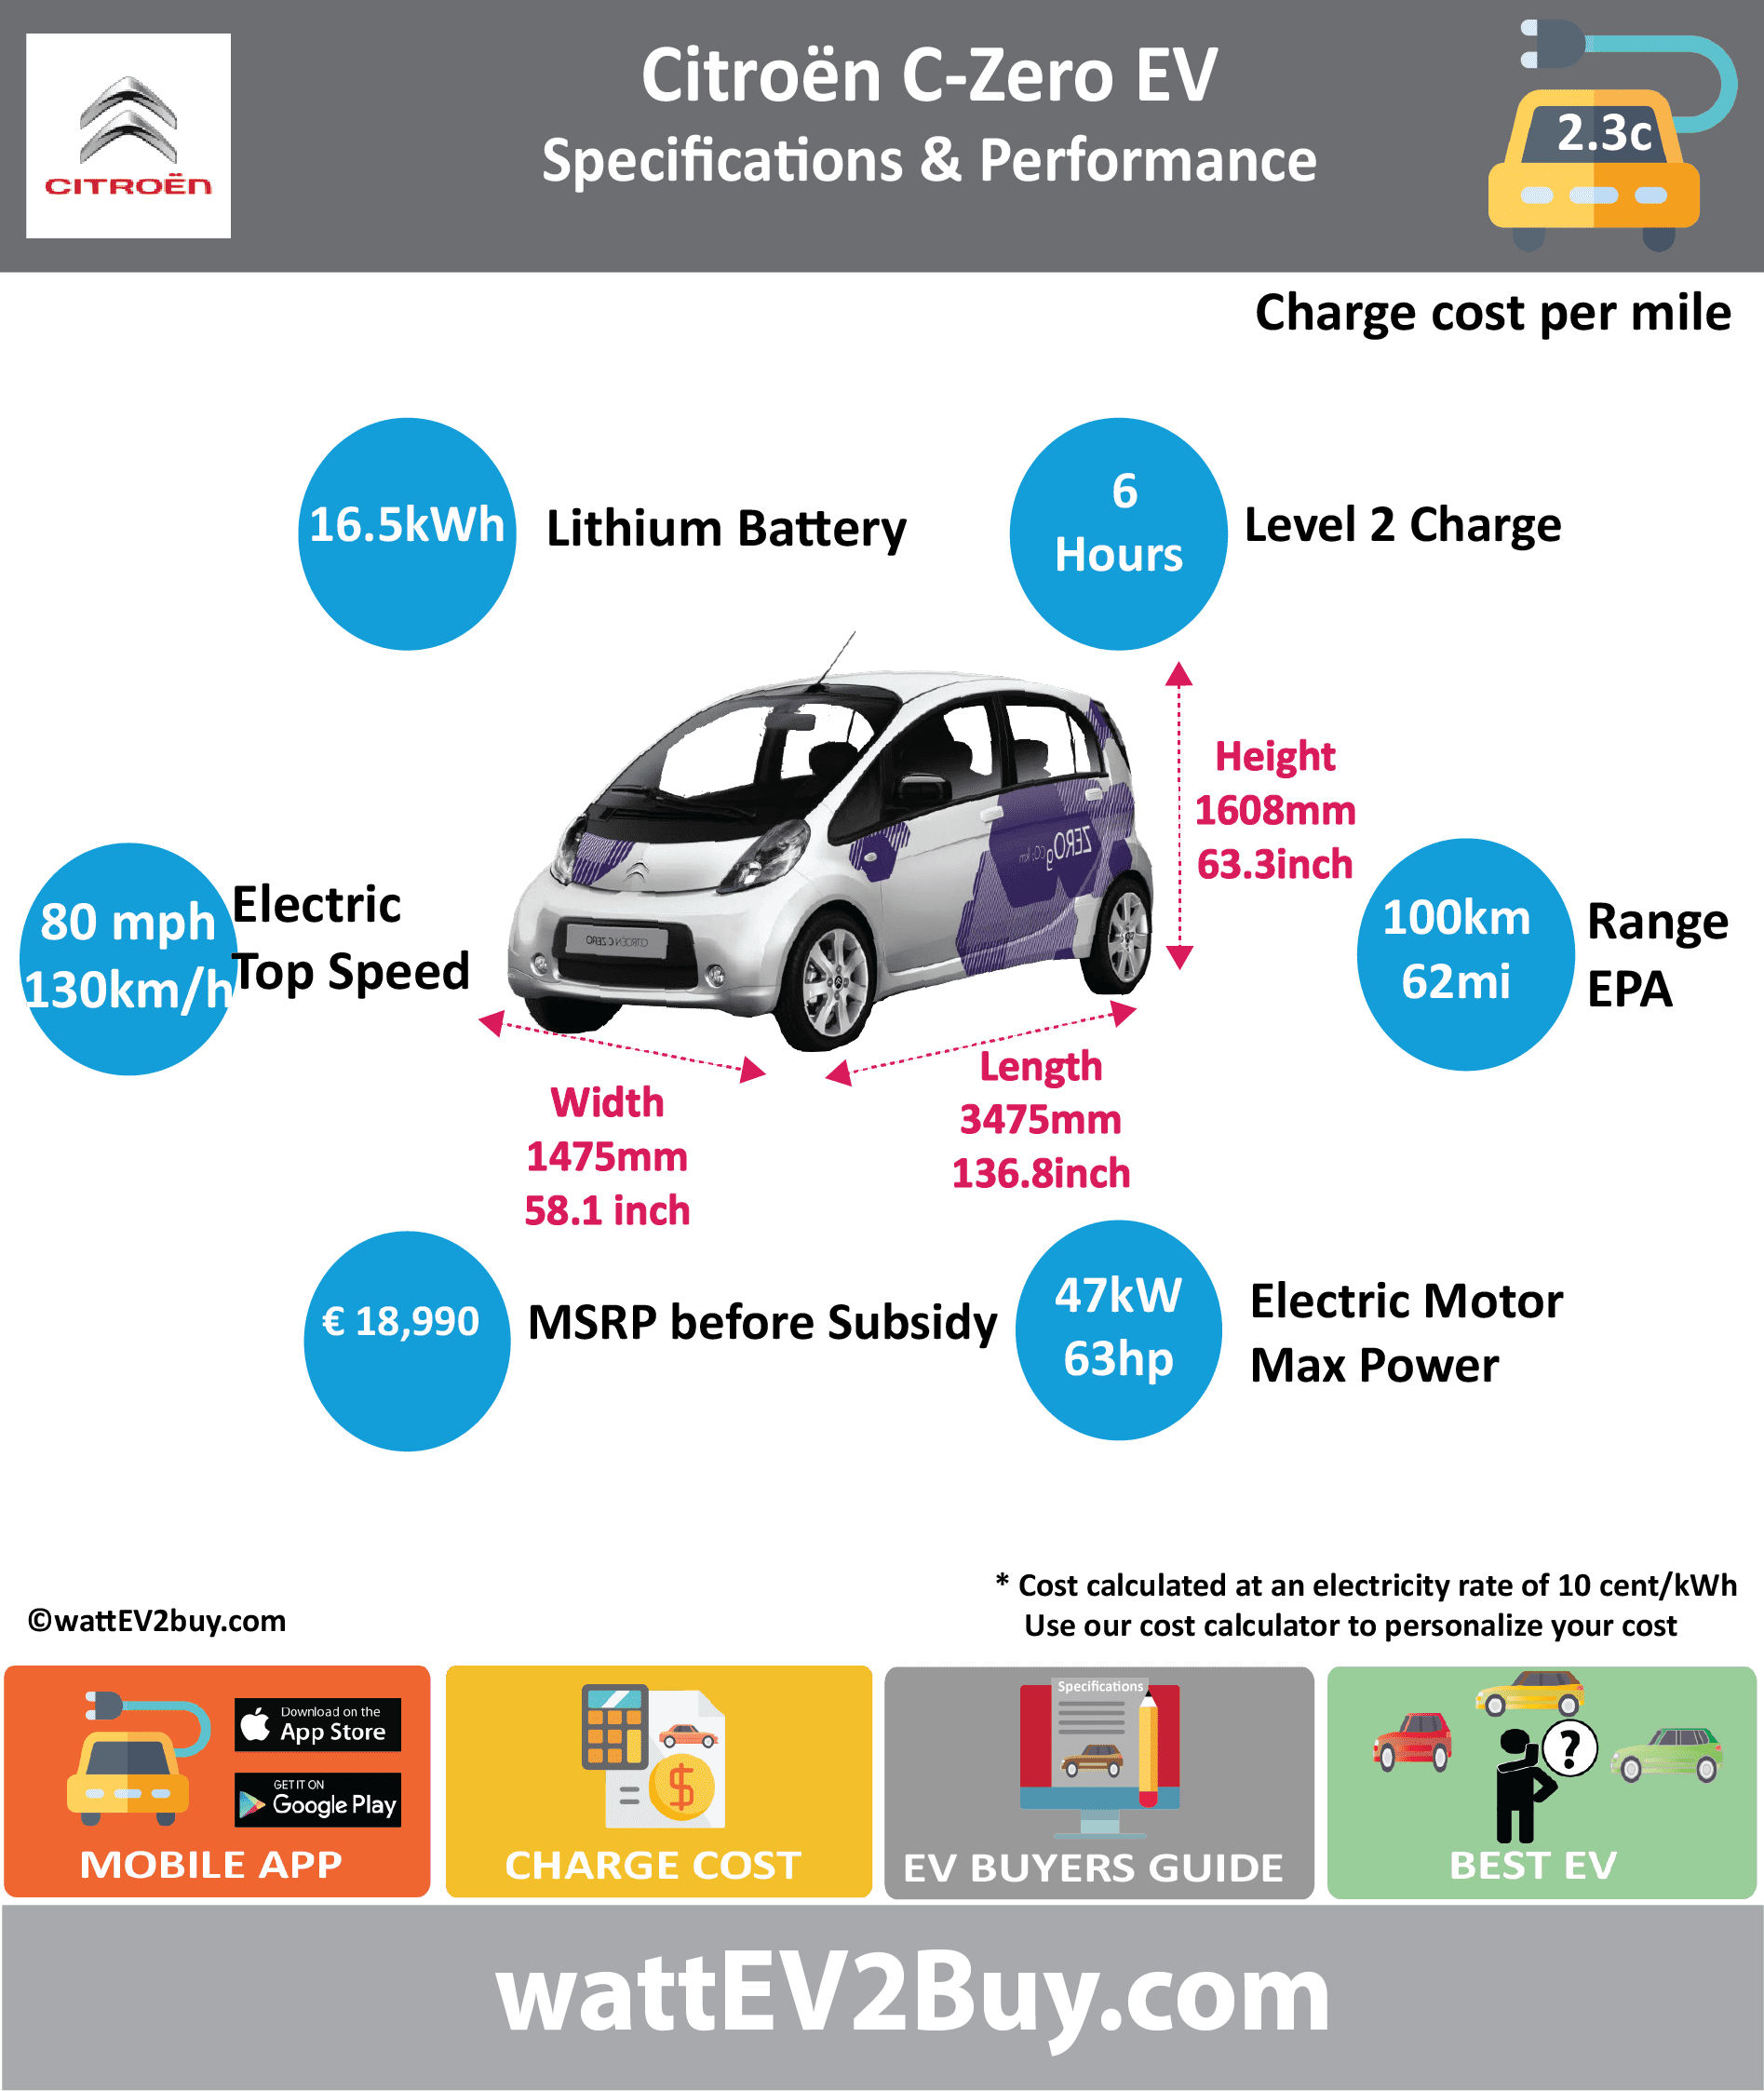 Citroen C-Zero EV Specs wattev2Buy.com 2011 2012 2013 2014 2015 2016 2017 Battery Chemistry lithium-ion titanate oxide Battery Capacity kWh 16.5 Battery Nominal rating kWh 14.5 Voltage V 330 Amps Ah 50 Cells 88 Modules Weight (kg) Cell Type SOC Cooling Cycles Battery Type Depth of Discharge (DOD) Energy Density Wh/kg Battery Manufacturer Toshiba Battery Warranty - years Battery Warranty - km Battery Warranty - miles Battery Electric Range - at constant 38mph Battery Electric Range - at constant 60km/h Battery Electric Range - NEDC Mi 100 Battery Electric Range - NEDC km 160 Battery Electric Range - CCM Mi Battery Electric Range - CCM km Battery Electric Range - EPA Mi 62 Battery Electric Range - EPA km 100 Electric Top Speed - mph 80 Electric Top Speed - km/h 130 Acceleration 0 - 100km/h sec 16.2 Acceleration 0 - 50km/h sec Acceleration 0 - 62mph sec Acceleration 0 - 60mph sec 15.1 Acceleration 0 - 37.2mph sec Wireless Charging Direct Current Fast Charge kW Charger Efficiency Onboard Charger kW Charging Cord - amps Charging Cord - volts LV 1 Charge kW LV 1 Charge Time (Hours) 14 LV 2 Charge kW LV 2 Charge Time (Hours) 7 LV 3 CCS/Combo kW LV 3 Charge Time (min to 70%) LV 3 Charge Time (min to 80%) 30 LV 3 Charge Time (mi) LV 3 Charge Time (km) Charging System kW Charger Output Charge Connector CHAdeMO Power Outlet kW Power Outlet Amps MPGe Combined - miles 112 MPGe Combined - km MPGe City - miles 126 MPGe City - km MPGe Highway - miles 99 MPGe Highway - km Max Power - hp Max Power - kW Max Torque - lb.ft Max Torque - N.m Drivetrain Generator Motor Type Electric Motor Output kW Electric Motor Output hp Transmission Electric Motor - Front FWD Max Power - hp FWD Max Power - kW FWD Max Torque - lb.ft FWD Max Torque - N.m Electric Motor - Rear 1 RWD Max Power - hp 63 RWD Max Power - kW 47 RWD Max Torque - lb.ft RWD Max Torque - N.m 180 Energy Consumption kWh/100km 13.5 Energy Consumption kWh/100miles Deposit GB Battery Lease per month EU Battery Lease per month MSRP (expe